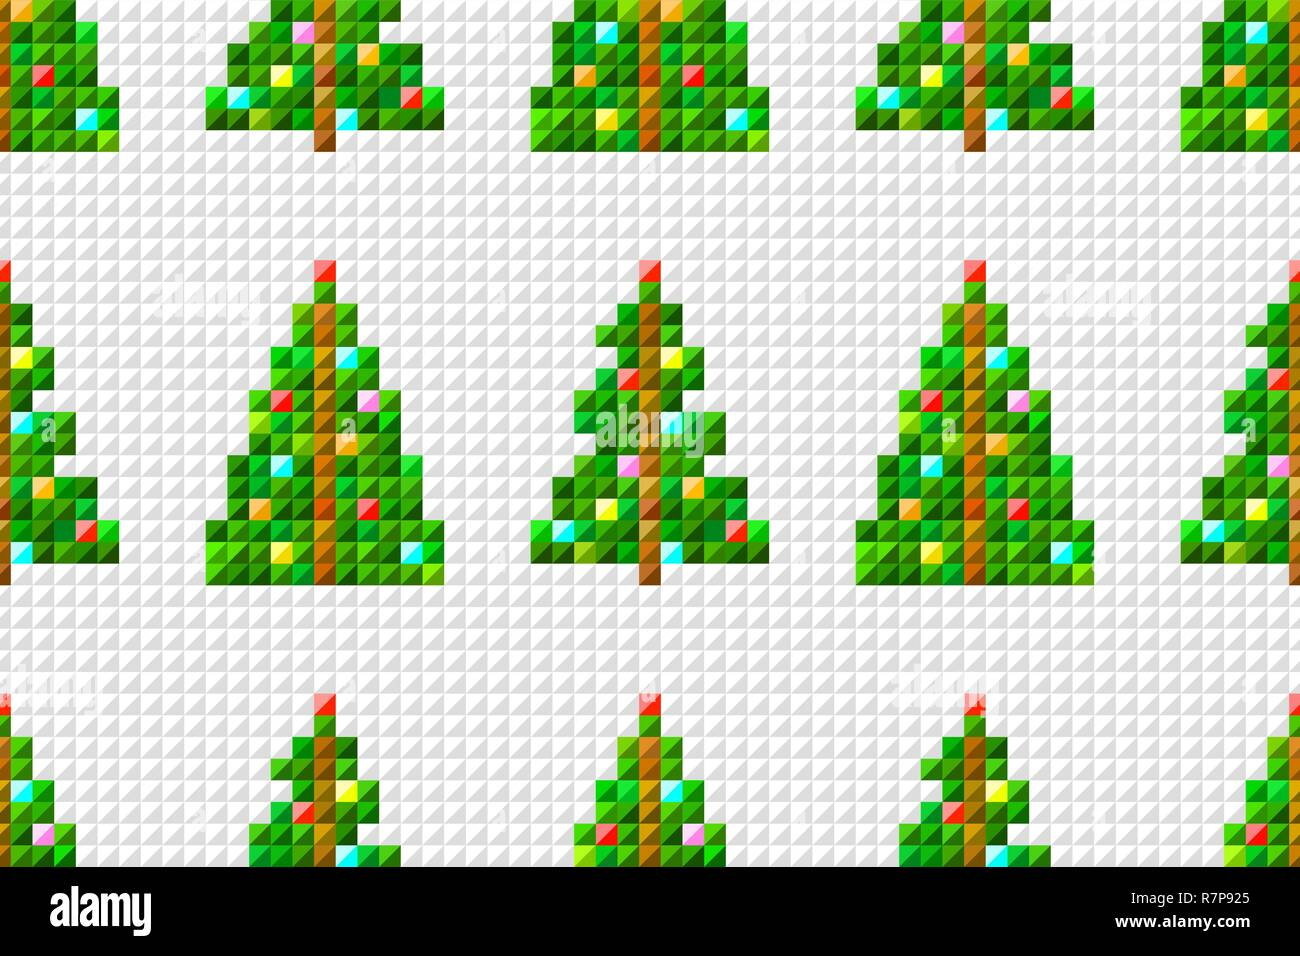 Vector Seamless Pattern Of Pixel Art Christmas Tree On Pixel